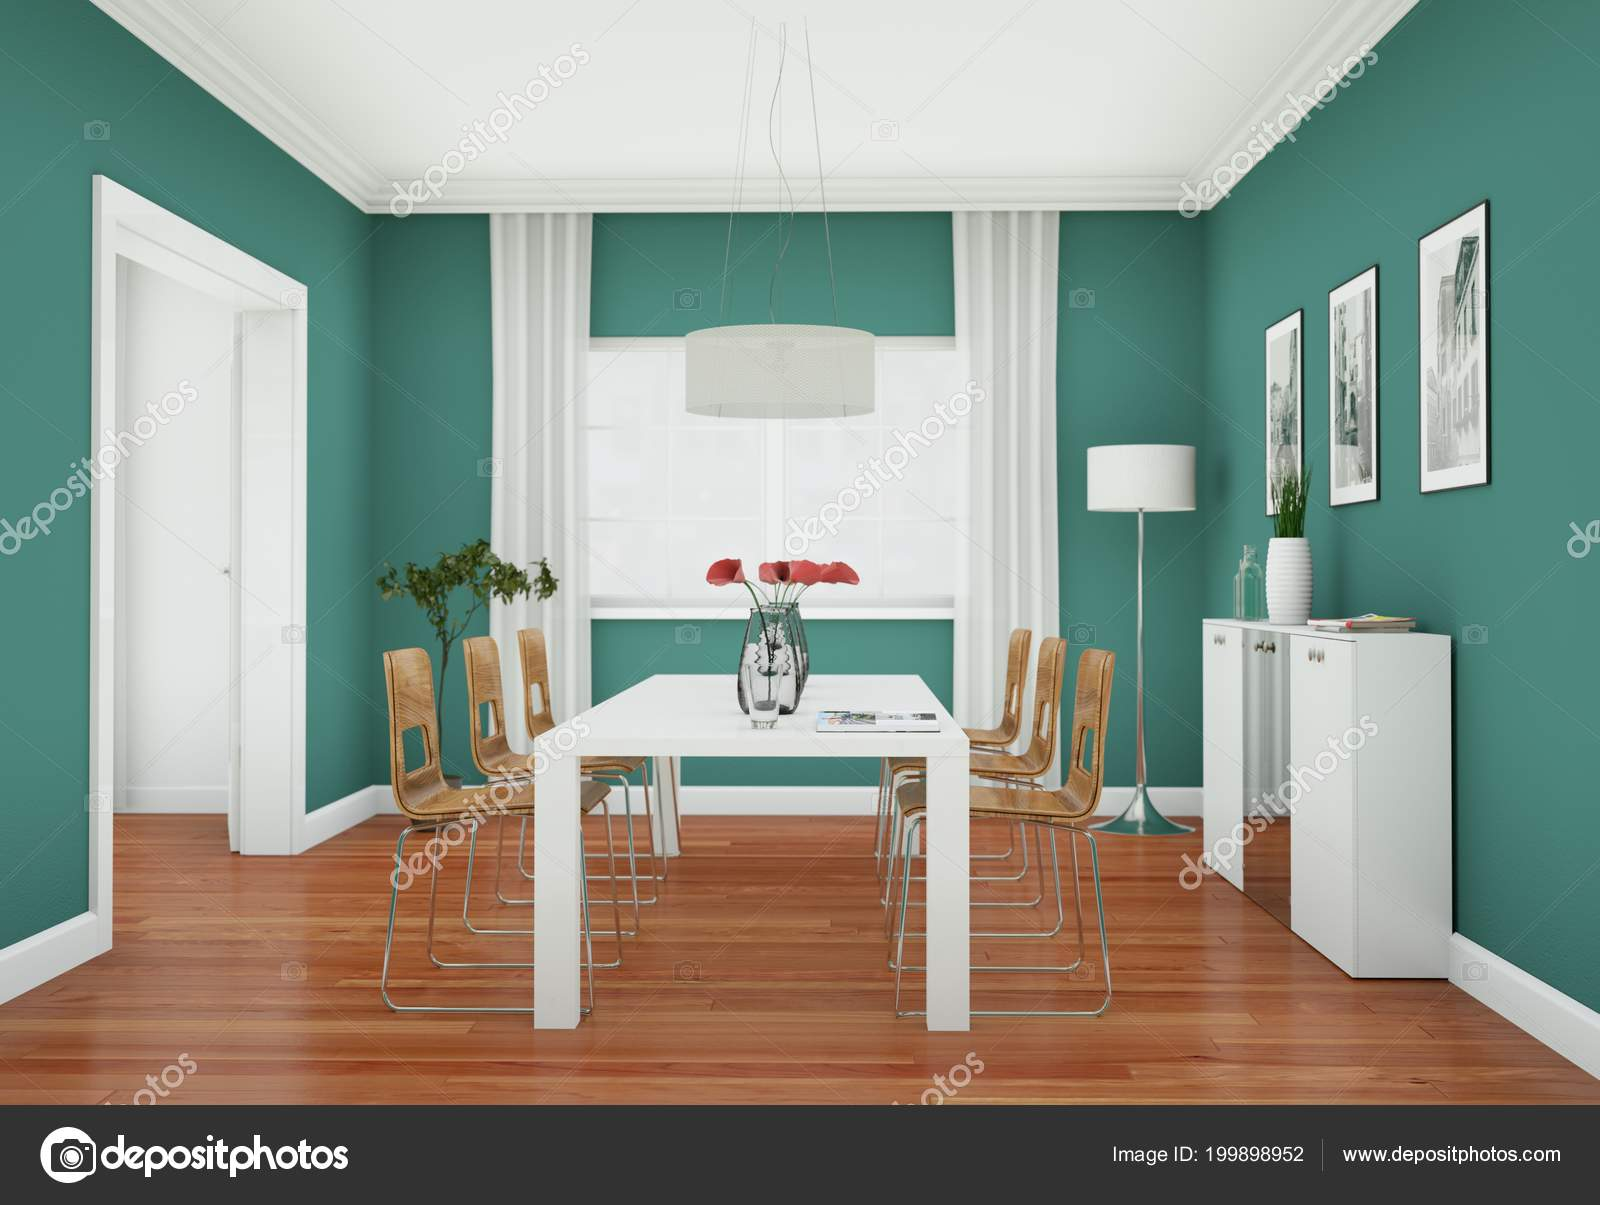 Innenarchitektur Verden Green Dining Room Interior Design In Modern Appartment Stock